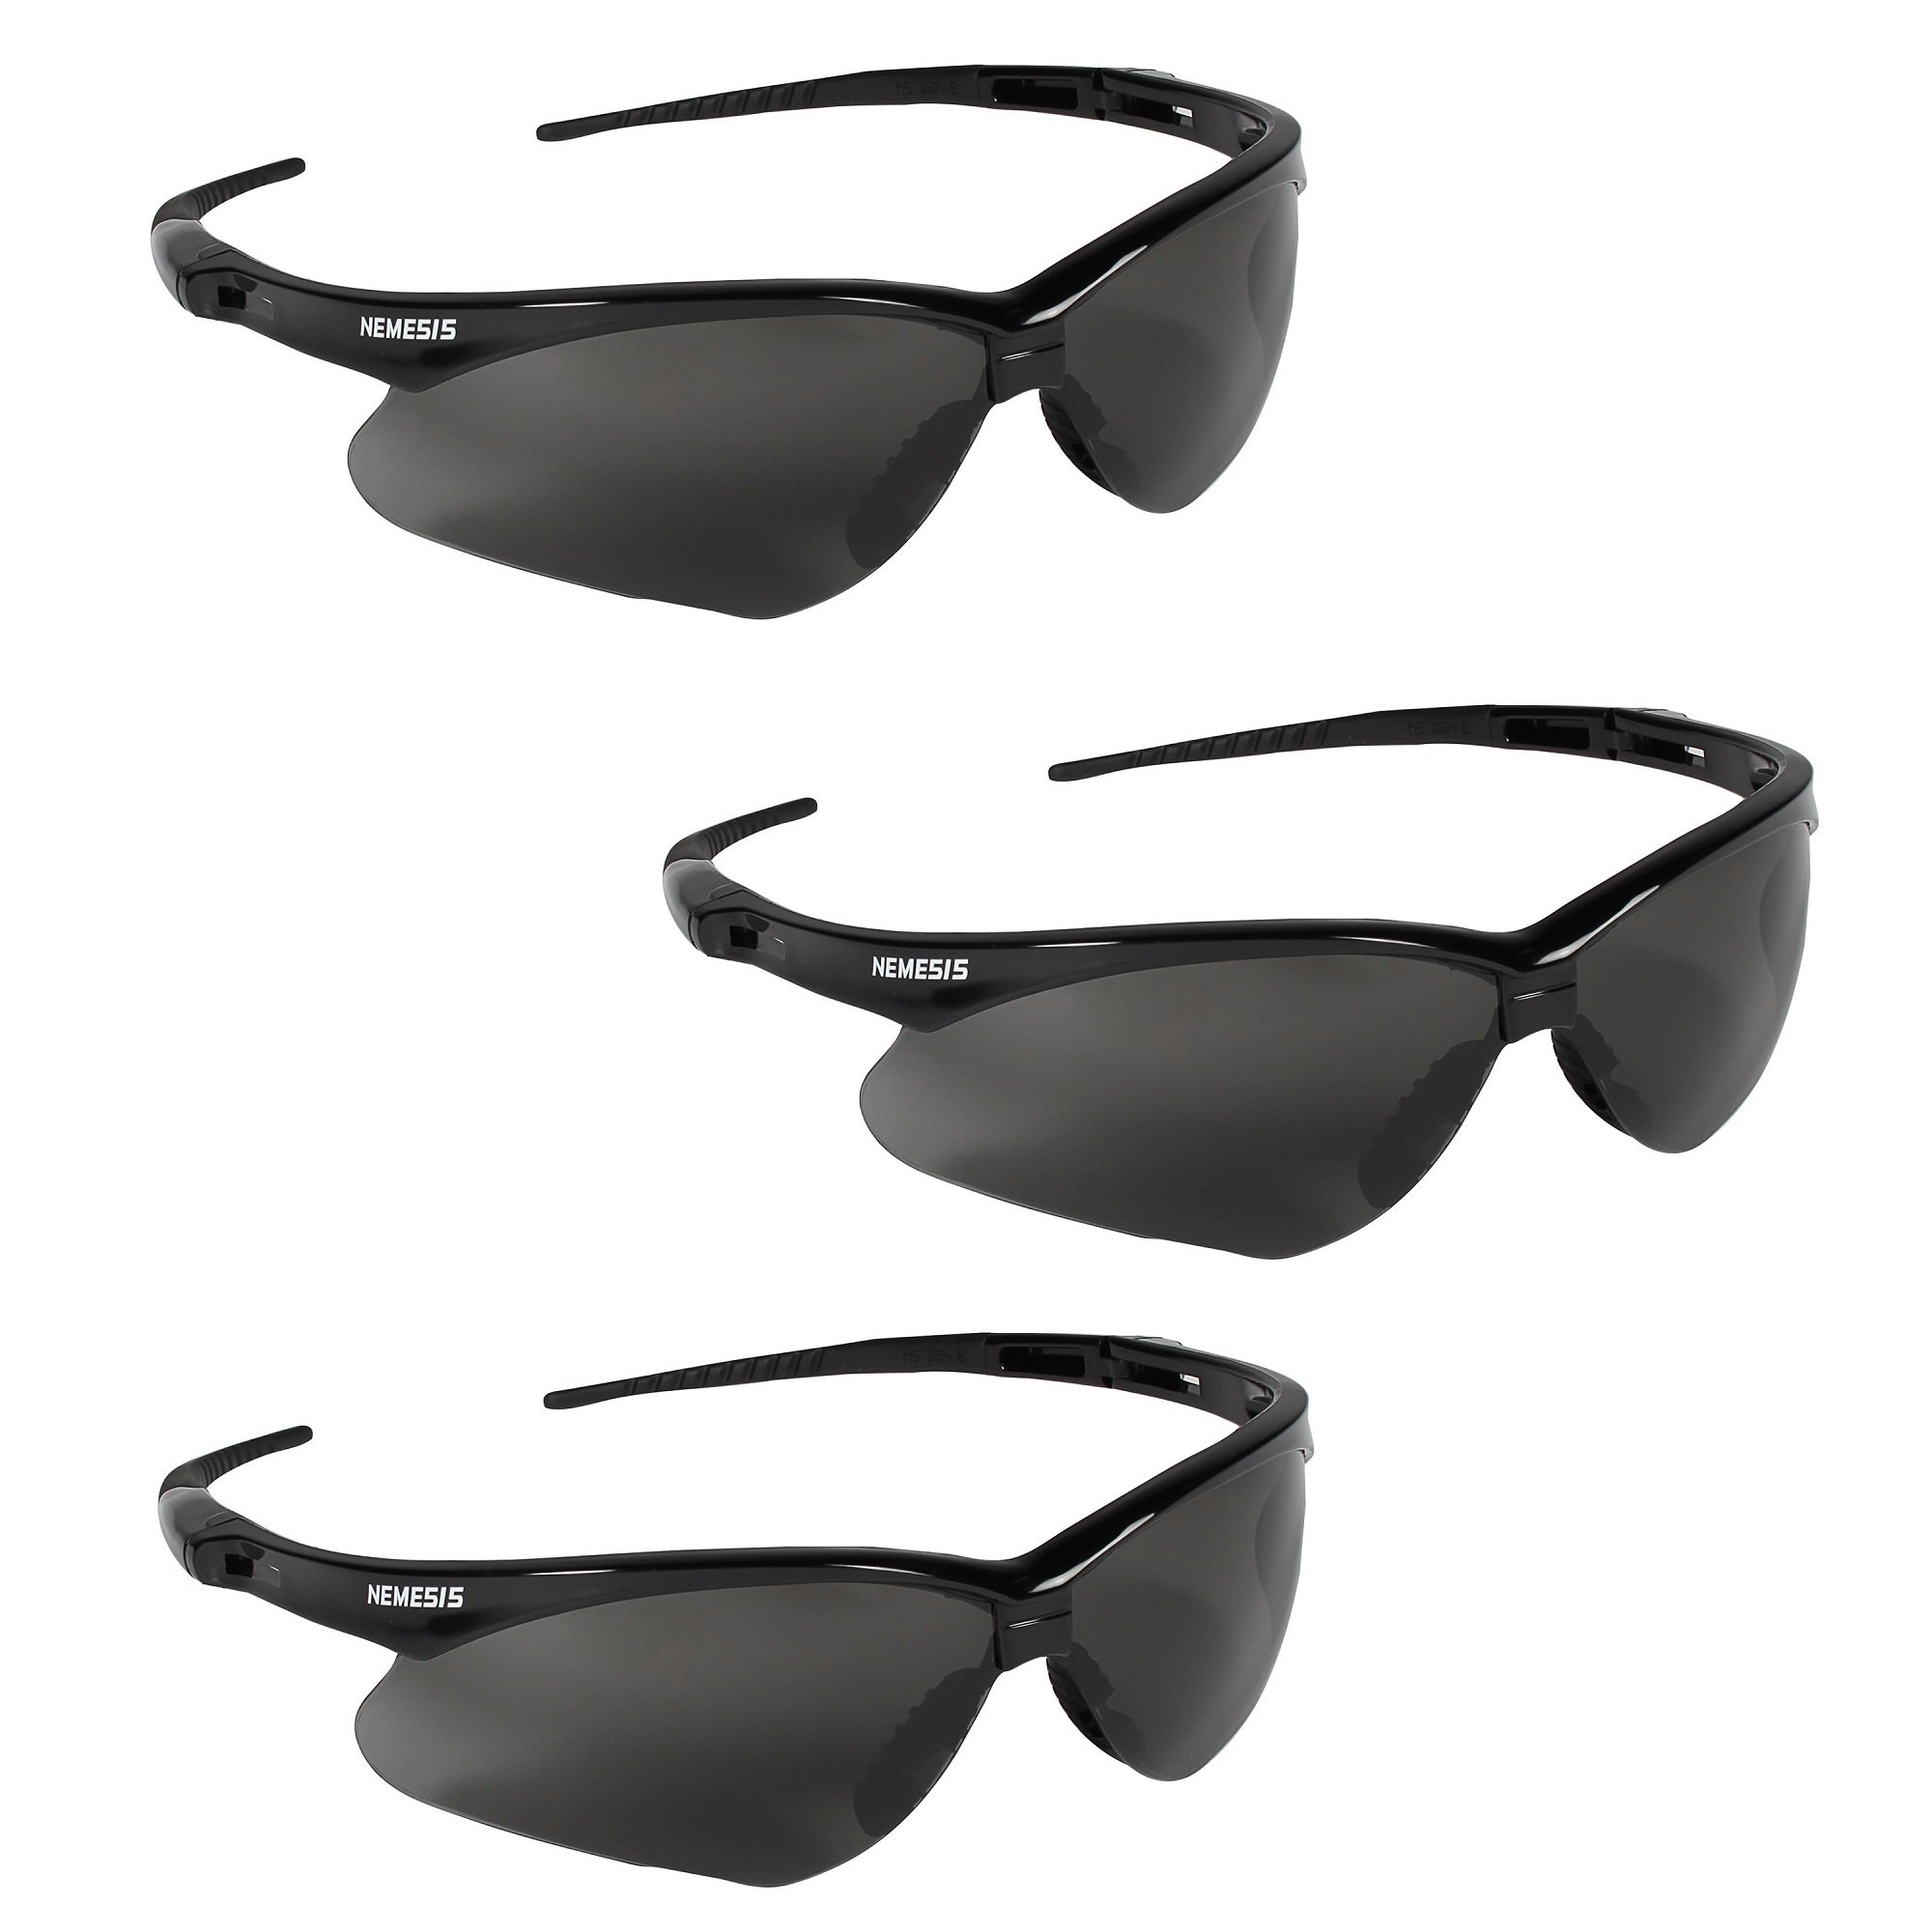 Jackson Safety V30 22475 Nemesis Safety Glasses 3020121 (3 Pair) (Black Frame with Smoke Anti-Fog Lens)